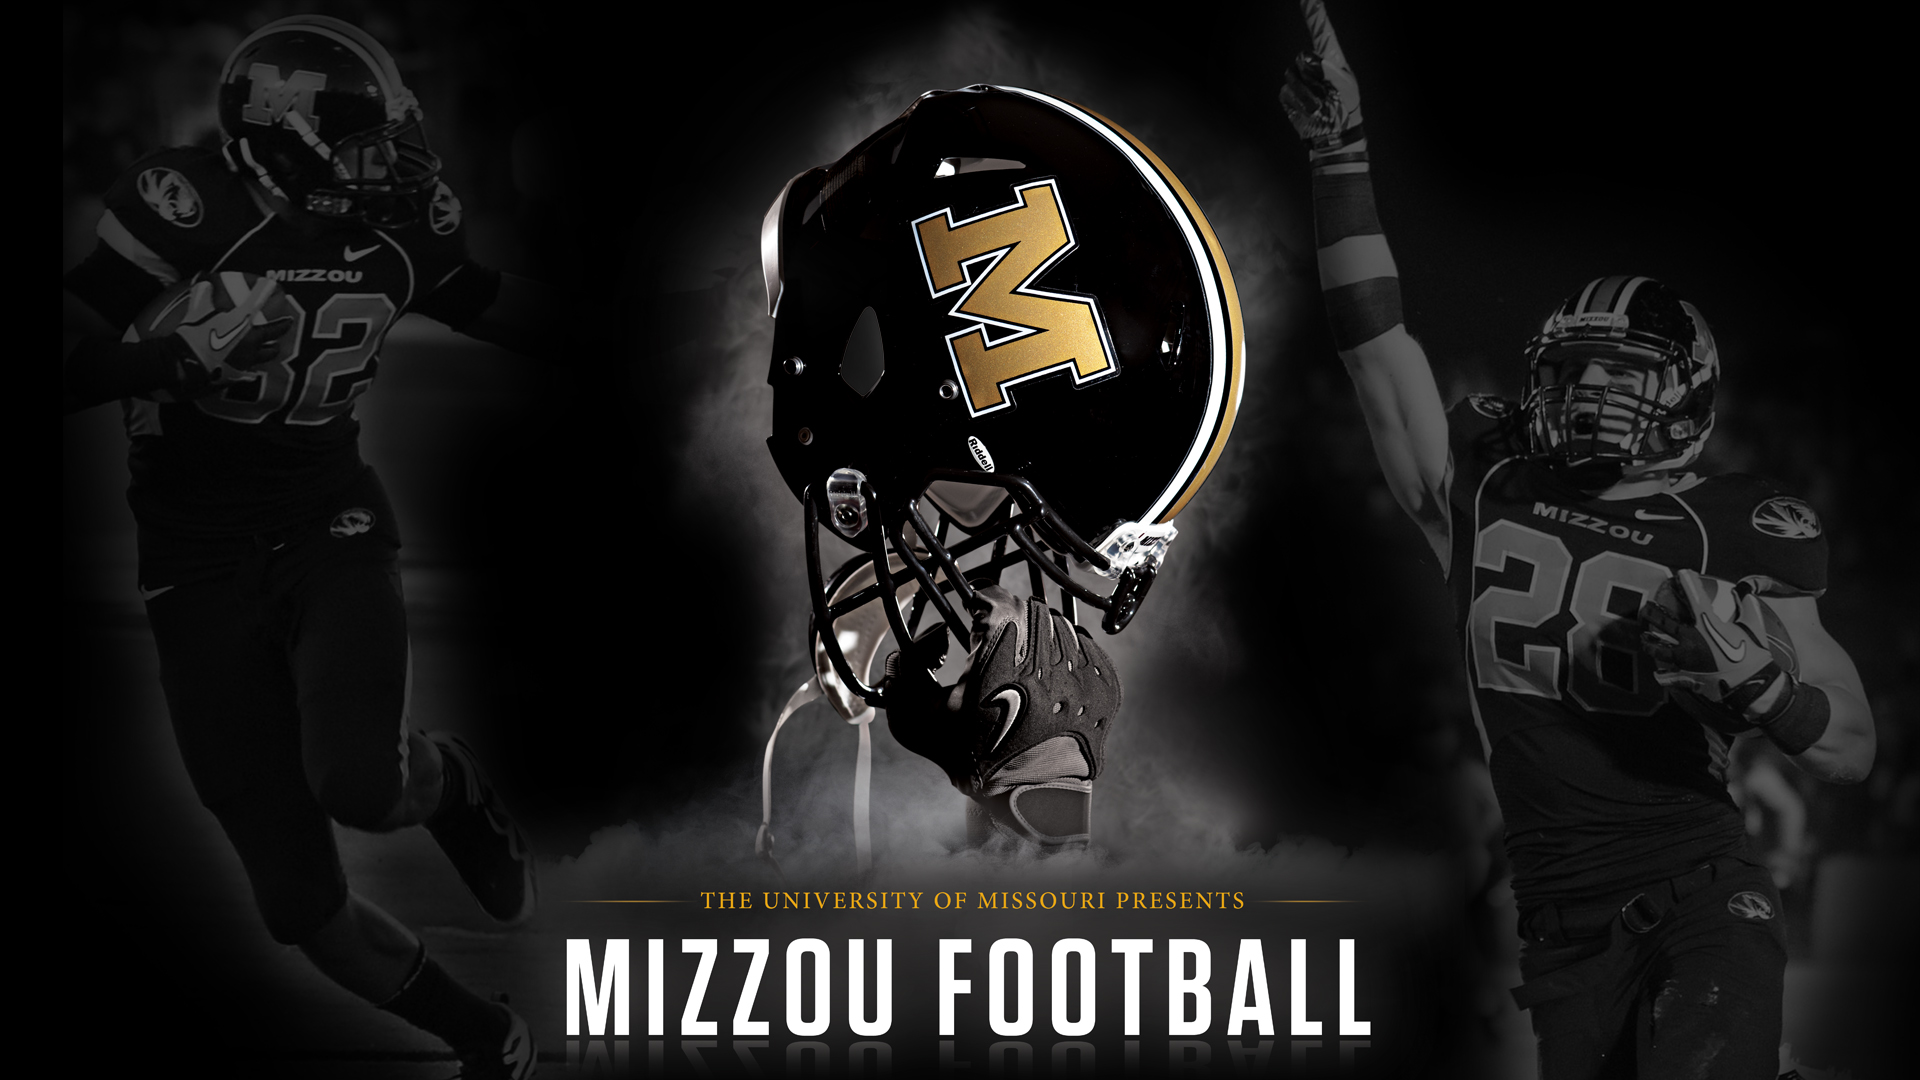 Missouri Tigers Football Wallpaper 1920x1080